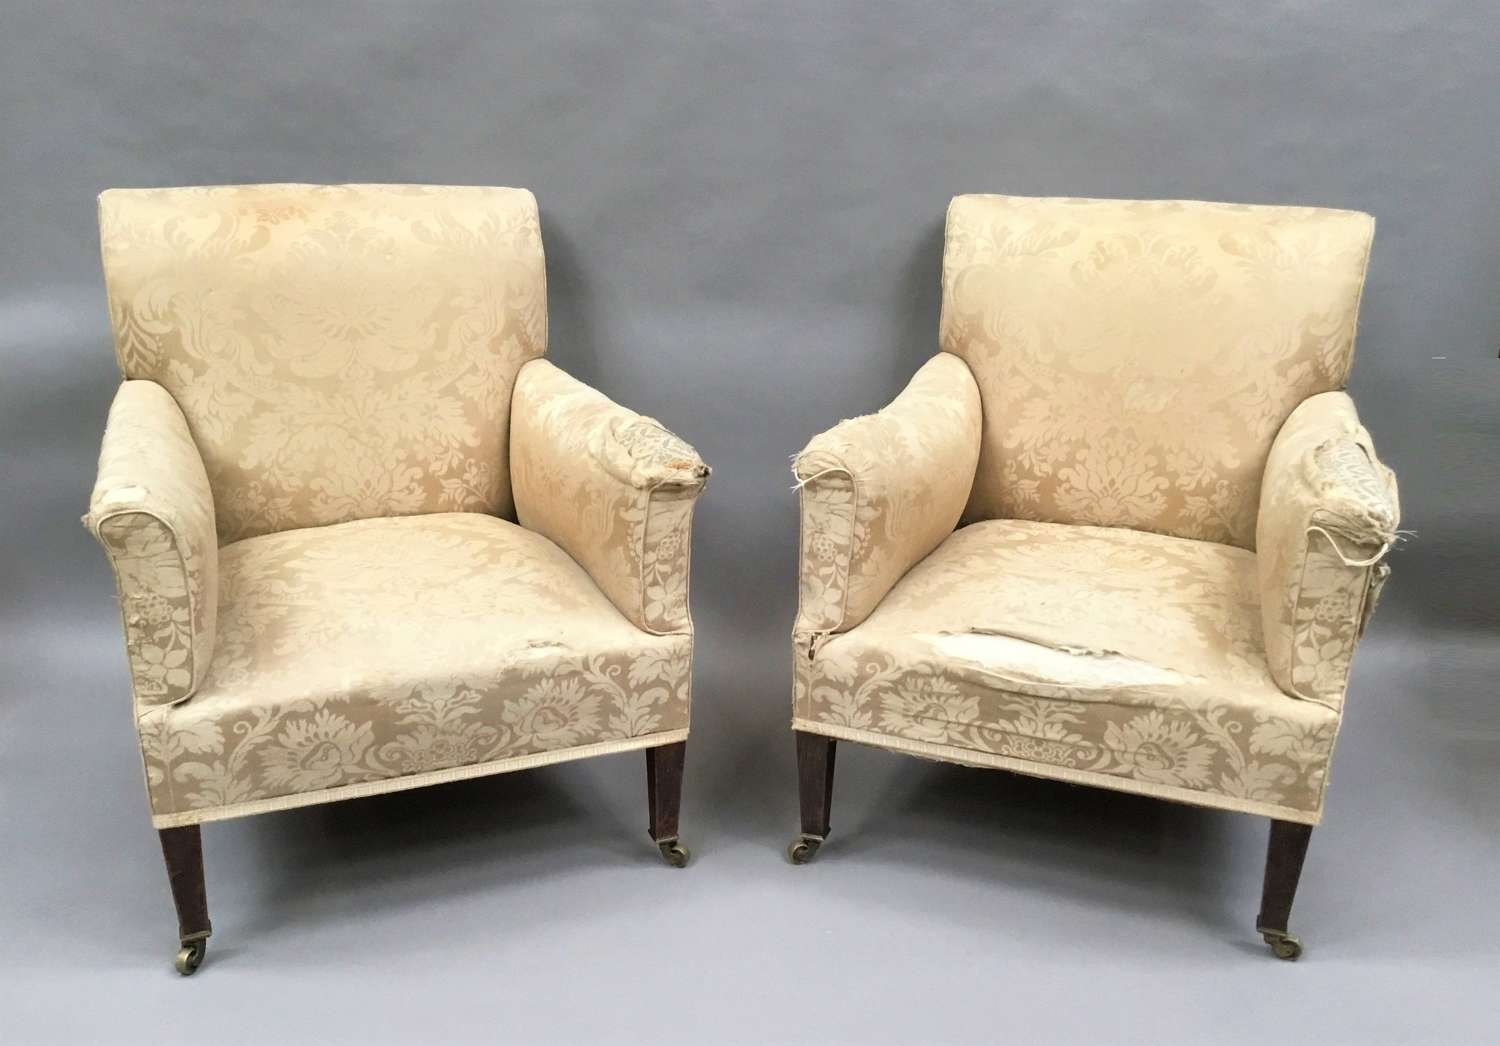 C19th Howard and Sons pair of upholstered library chairs / armchair